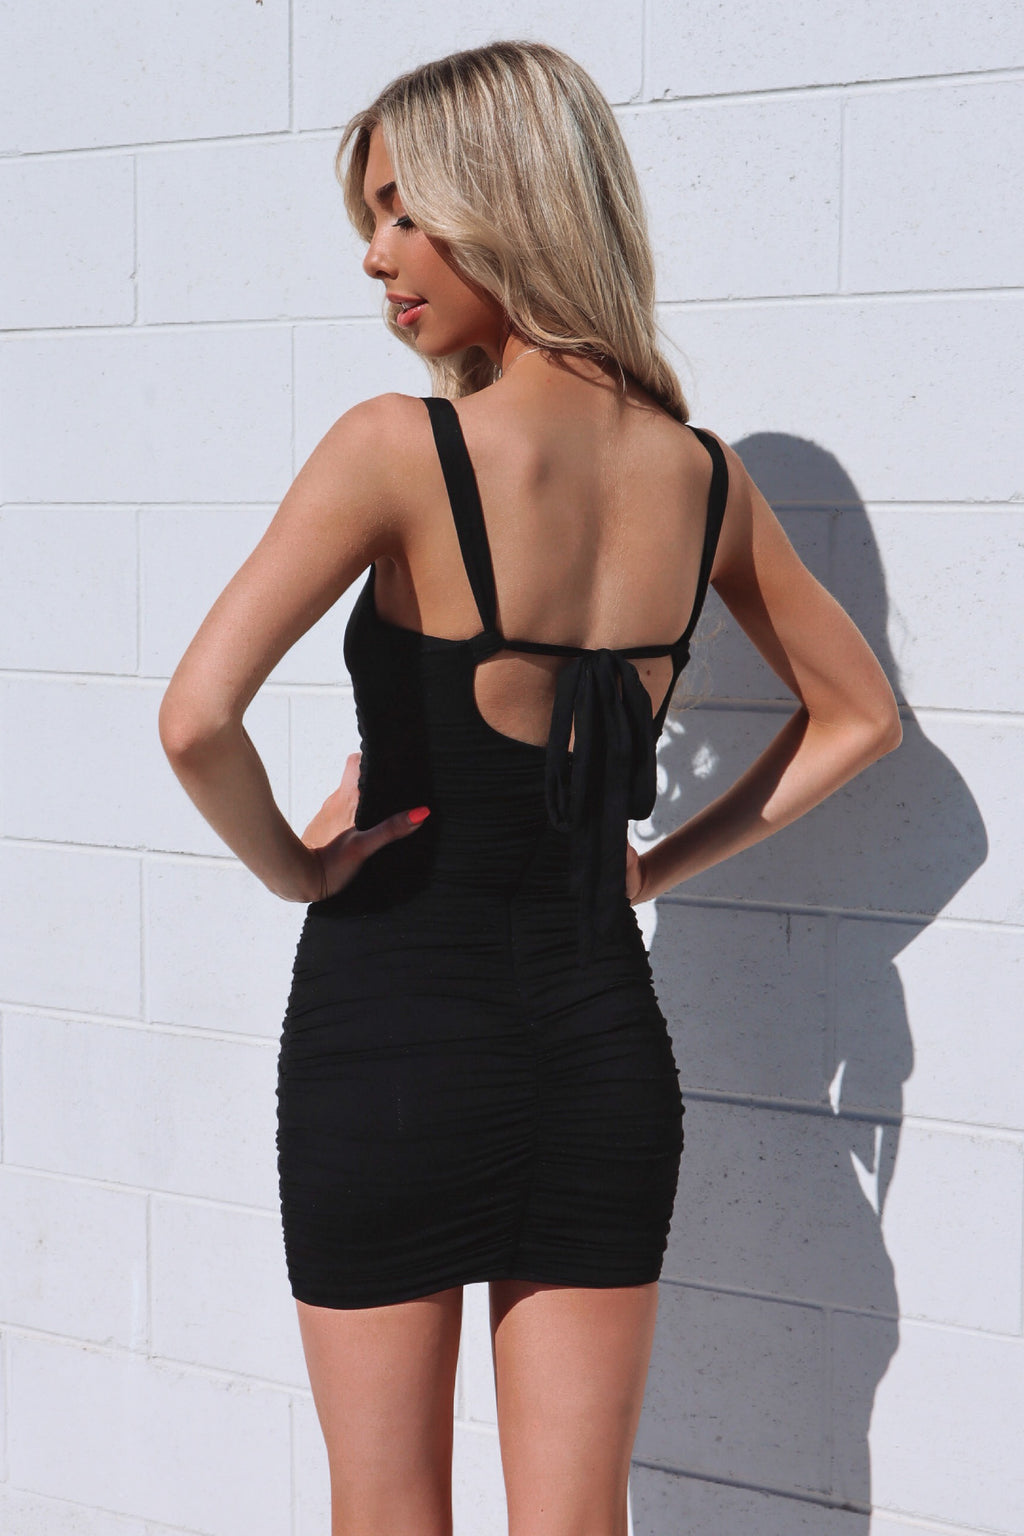 Ciara Jersey Dress - Black